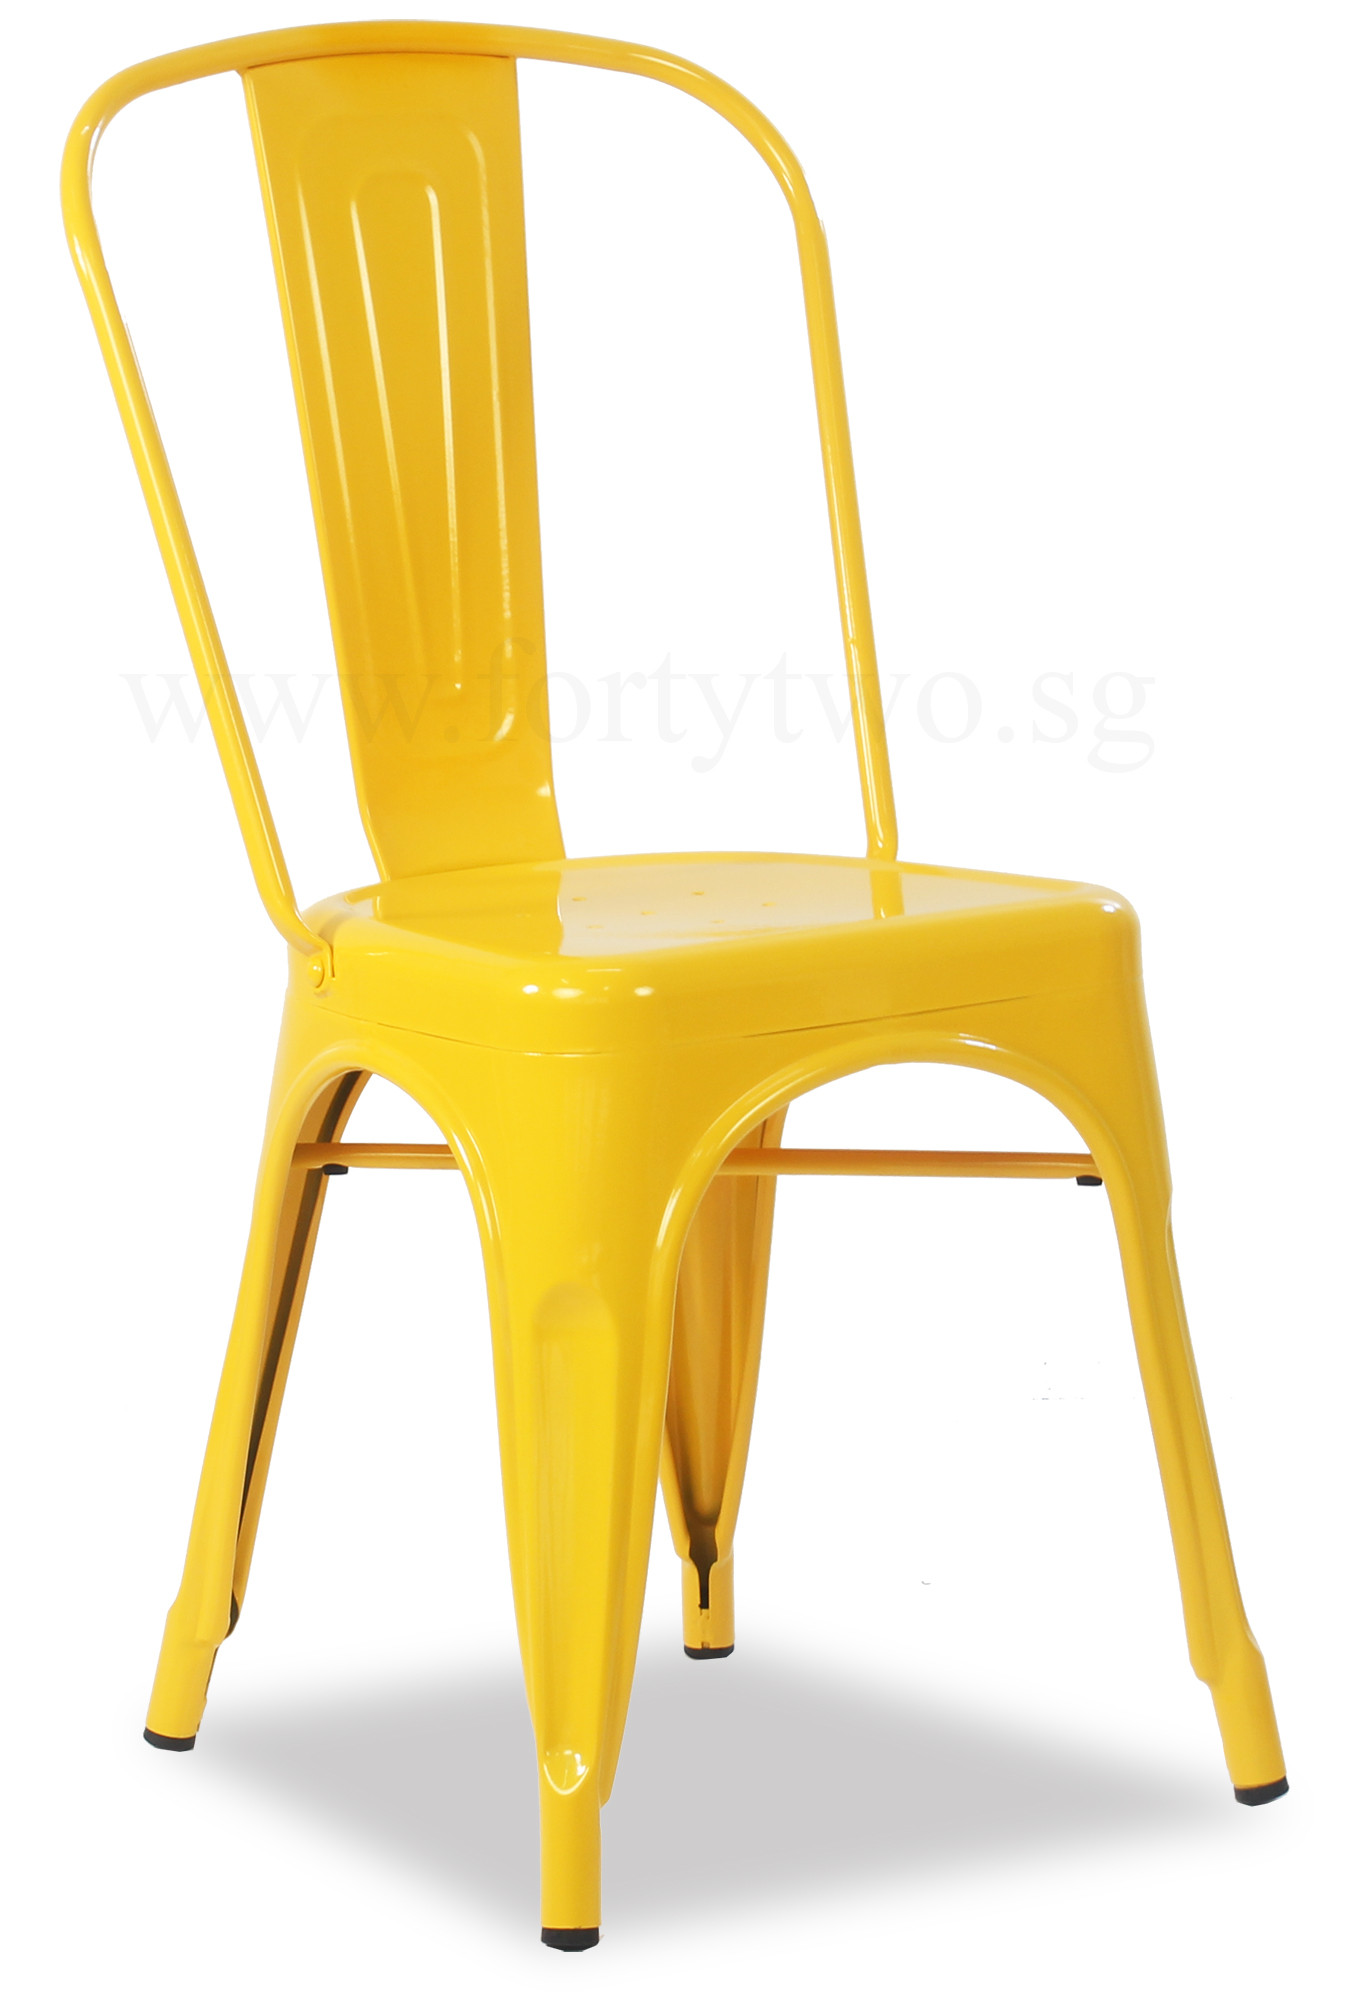 Retro Metal Chair Yellow